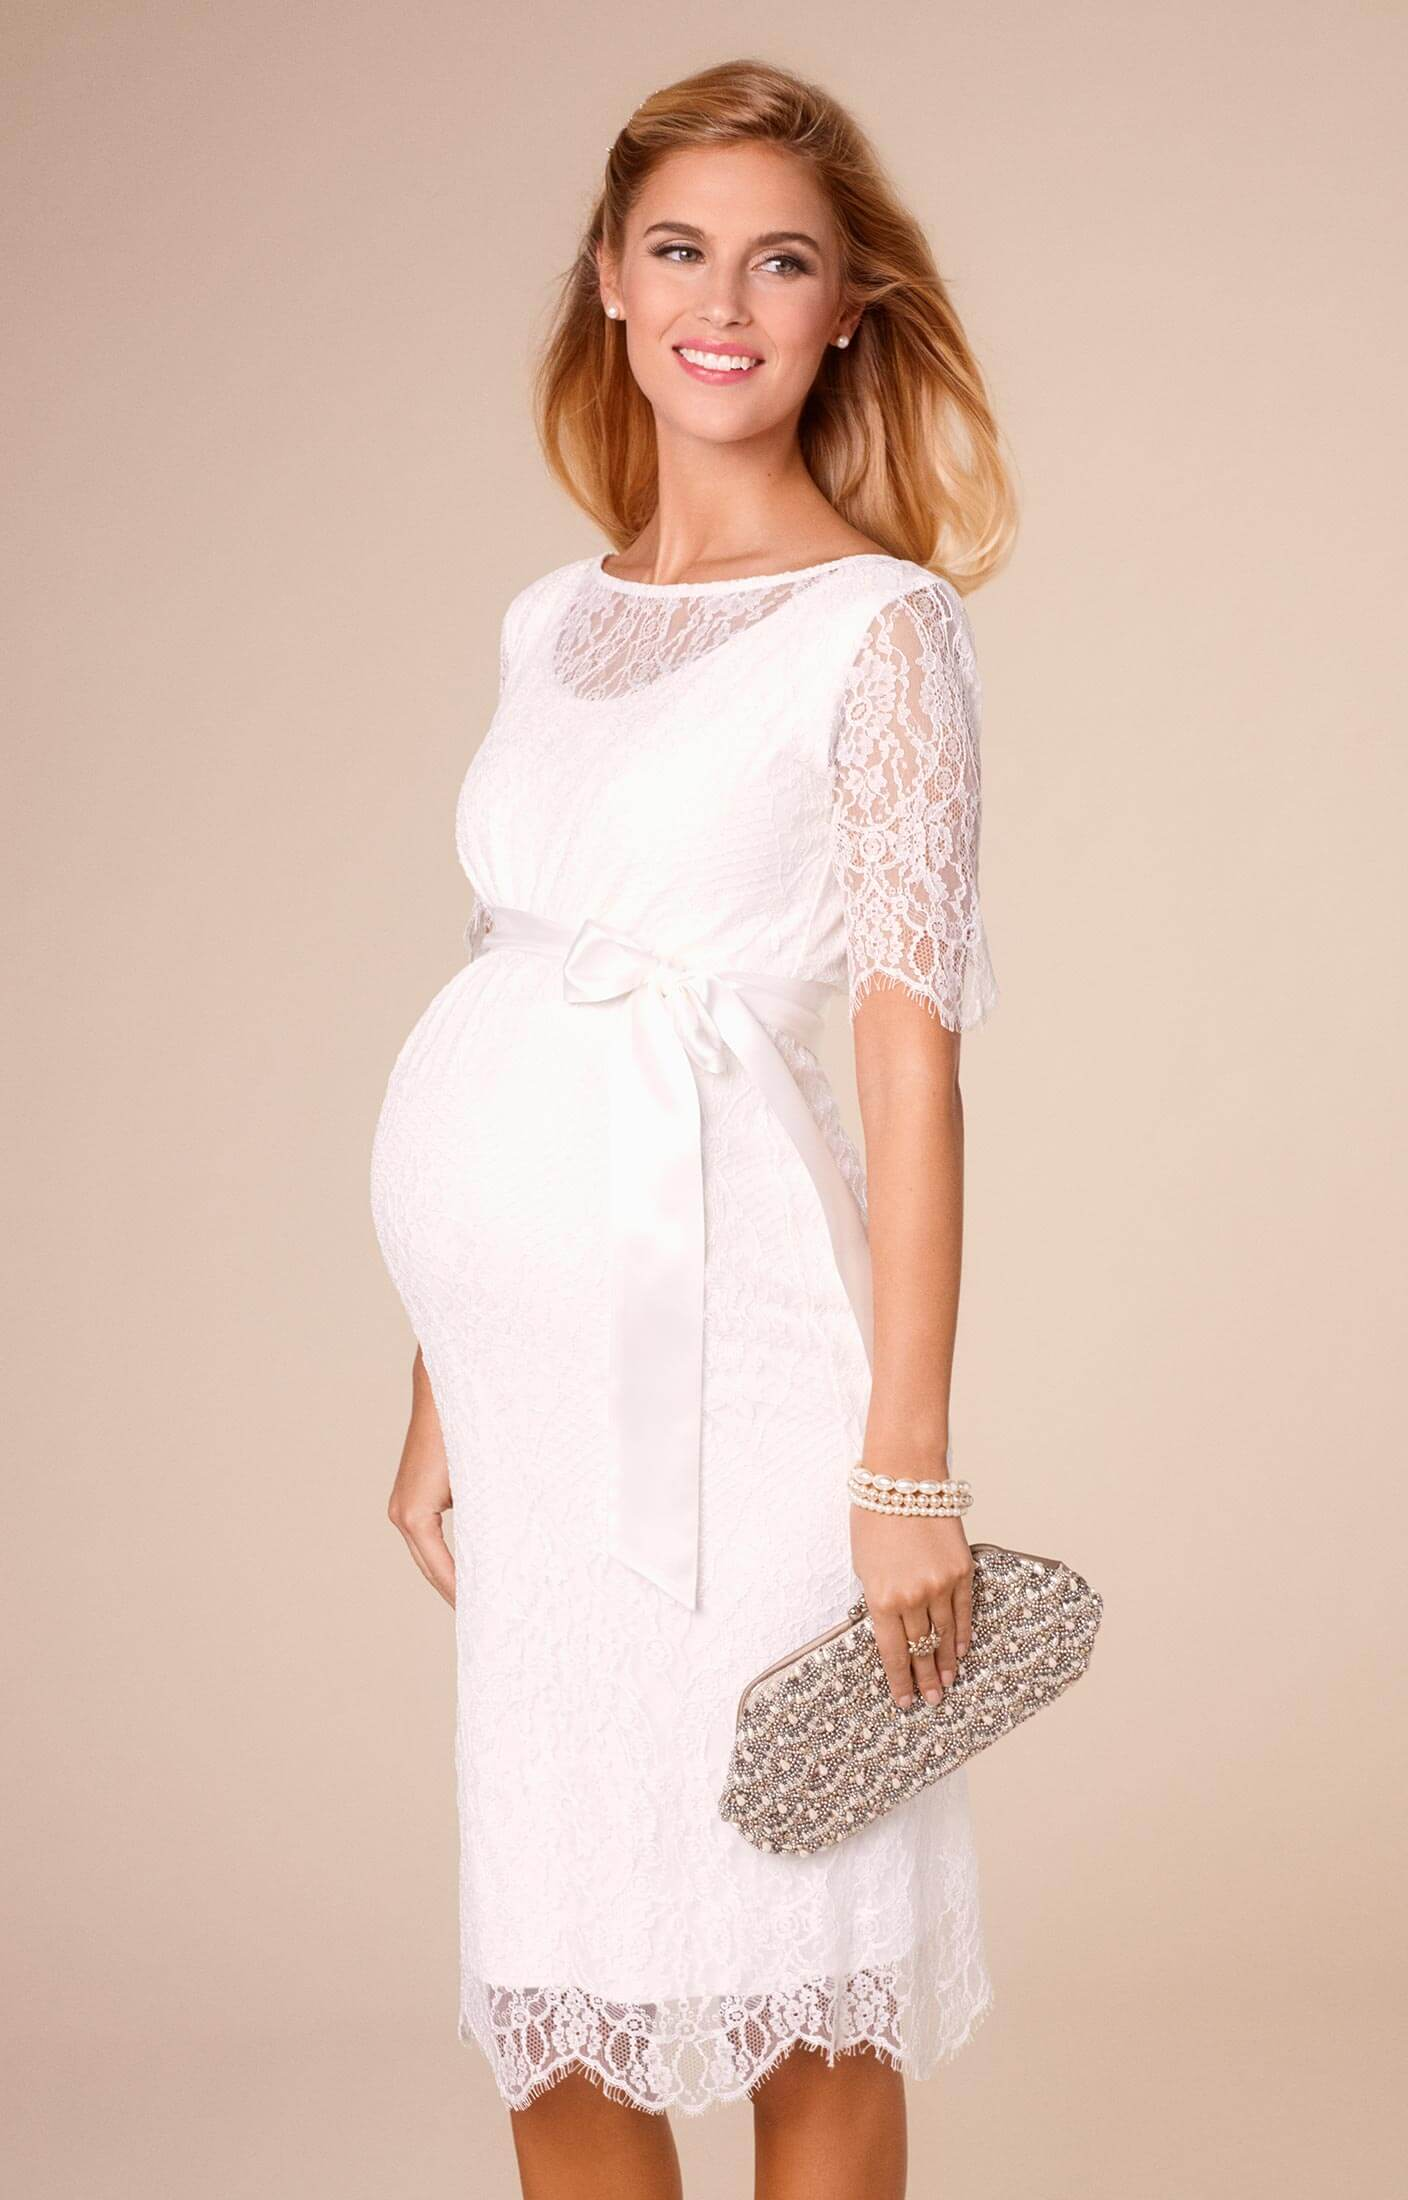 Short maternity wedding dresses bridesmaid dresses for Maternity dress for a wedding